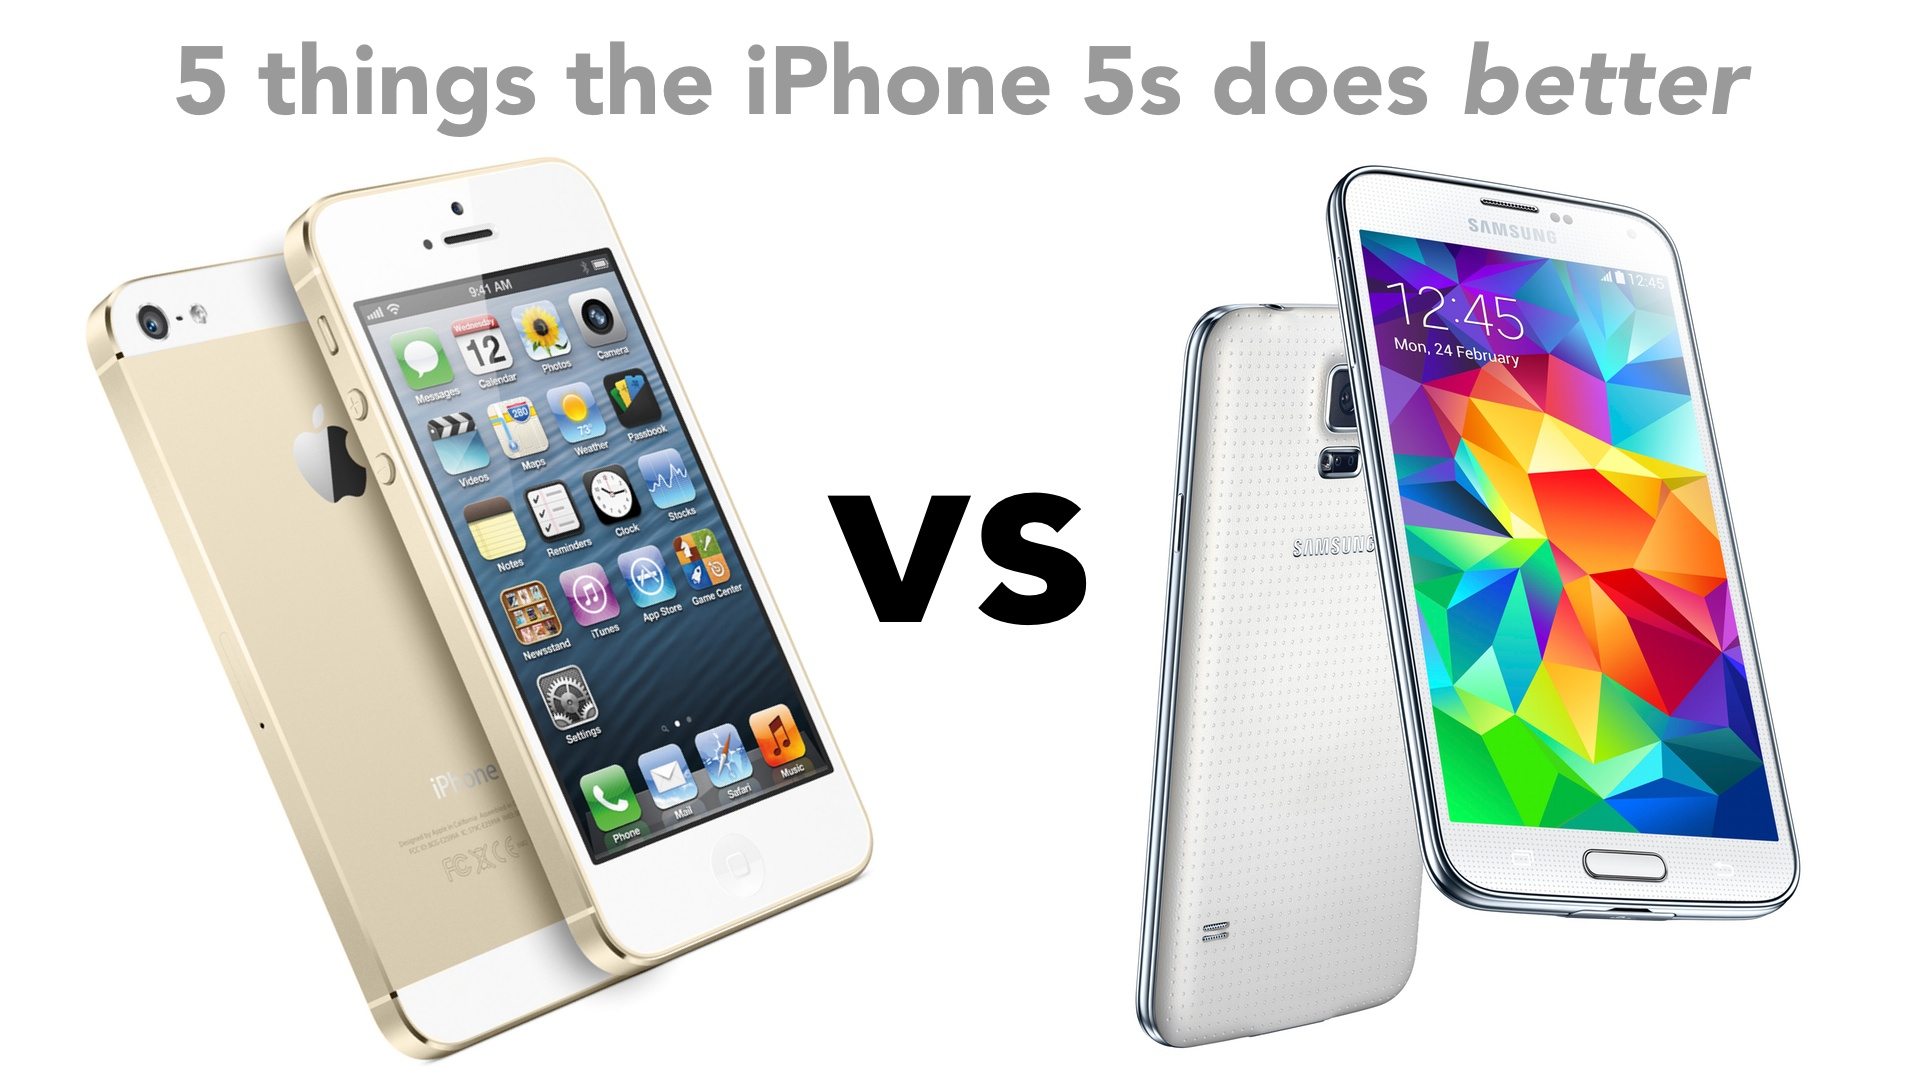 5 things the iPhone 5s does better